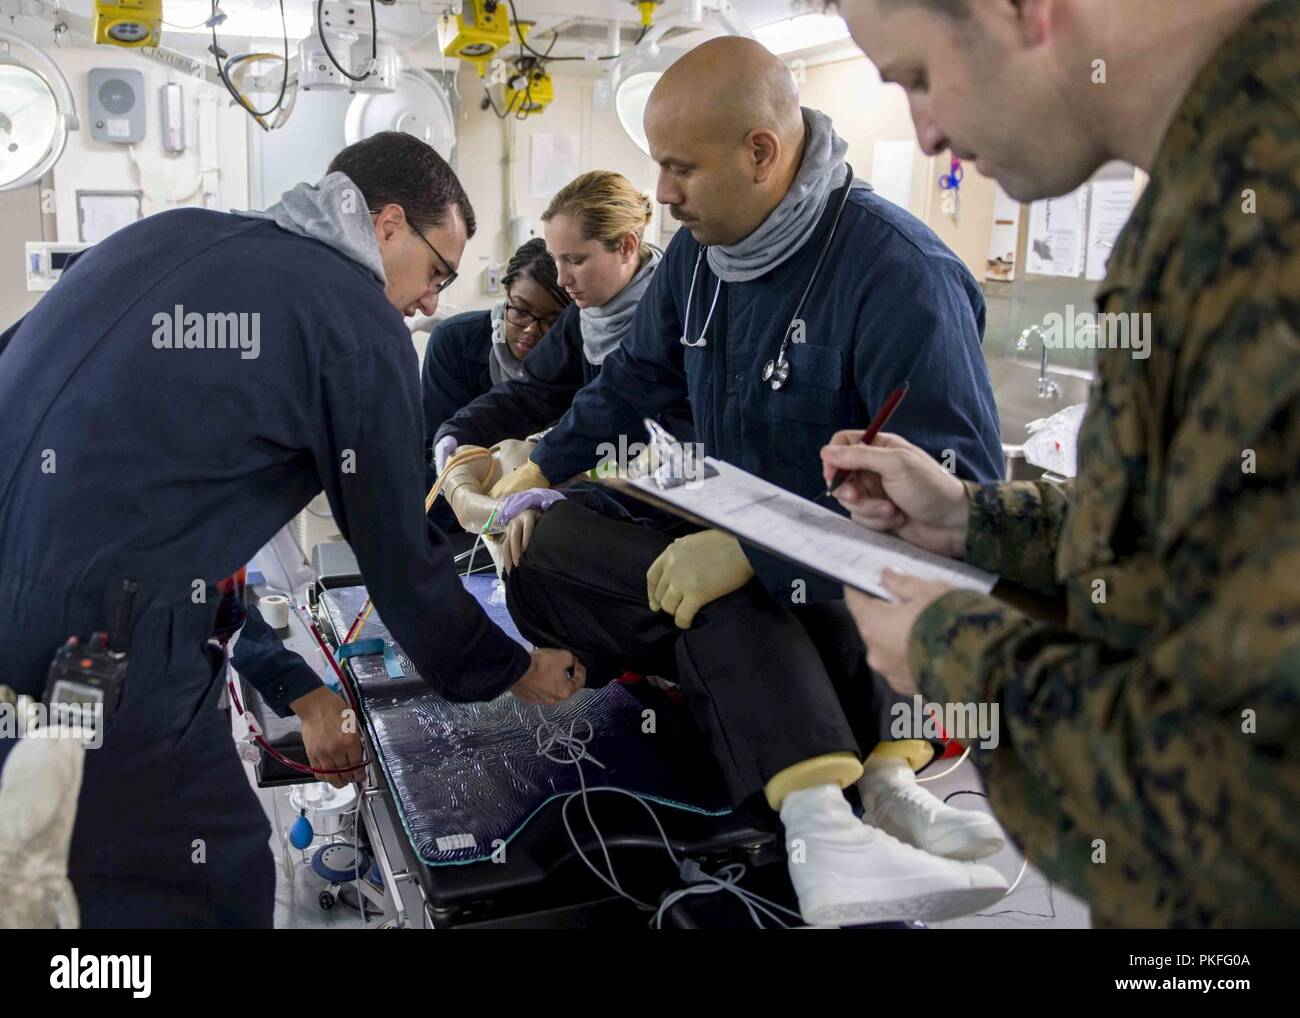 PACIFIC OCEAN (August 4, 2018) Sailors conduct medical emergency response training in the medical ward aboard San Antonio-class amphibious transport dock USS Anchorage (LPD 23) during a regularly scheduled deployment of the Essex Amphibious Ready Group (ARG) and 13th Marine Expeditionary Unit (MEU). The Essex ARG/MEU team is a strong and flexible force equipped and scalable to respond to any crisis ranging from humanitarian assistance and disaster relief to contingency operations. - Stock Image